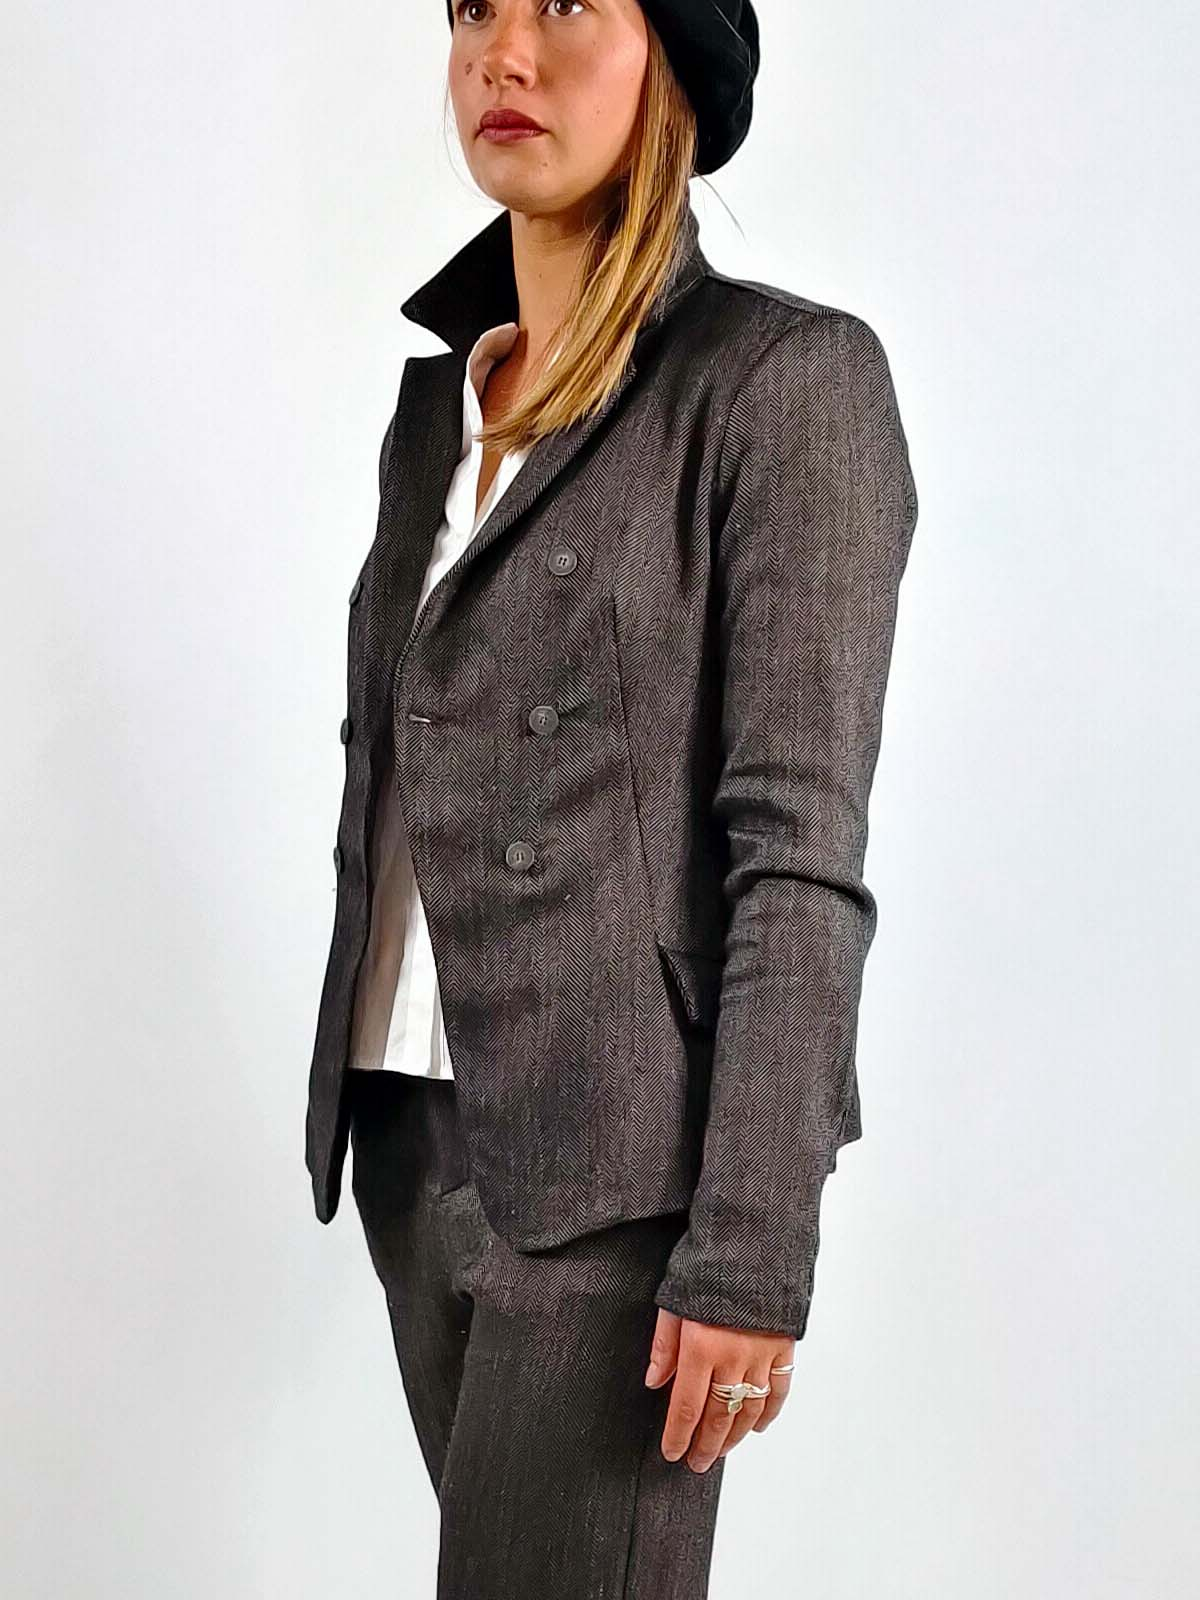 Transit Herringbone Suit Jacket [B112]